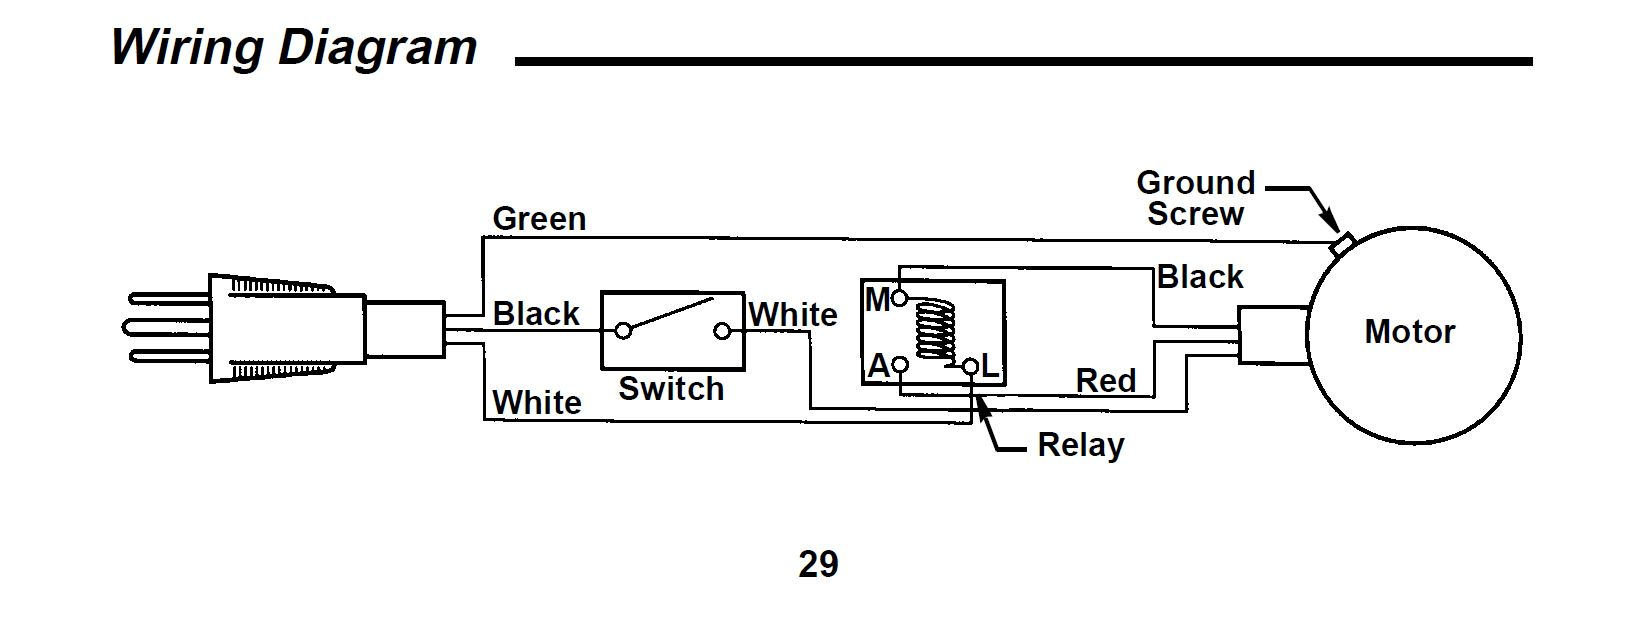 Ridgid table saw switch wiring diagram wiring diagram ridgid eb44242 oscillating edge belt spindle sander page 2 ridgid table saw parts manual ridgid table saw switch wiring diagram keyboard keysfo Gallery